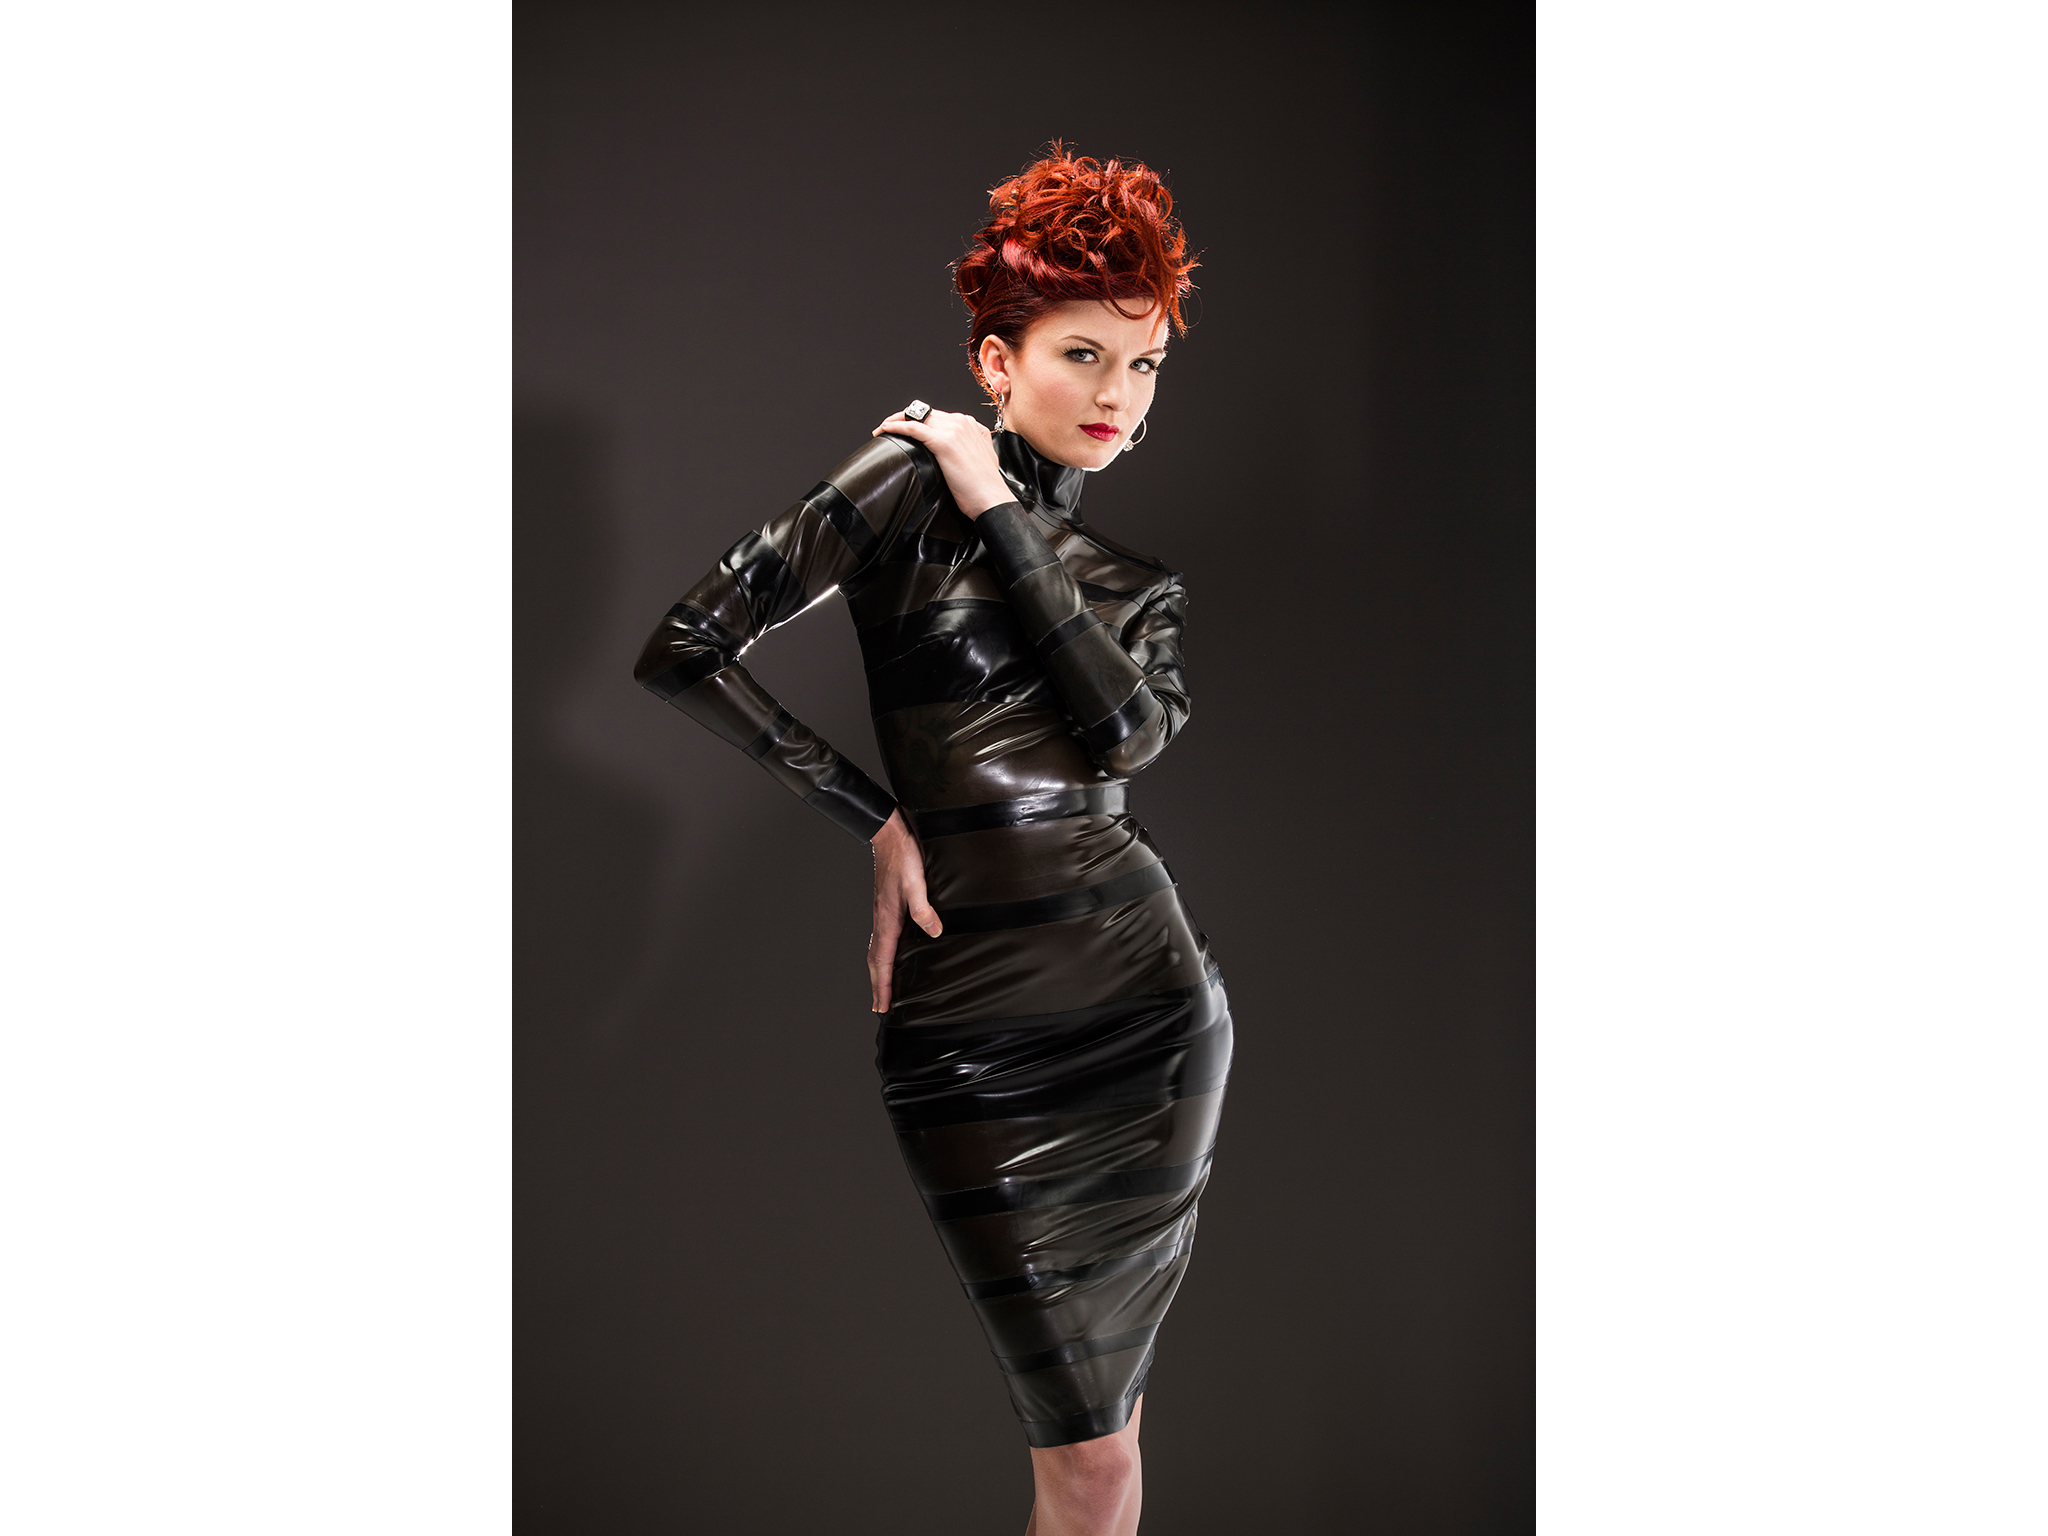 Red-headed woman in black latex dress for a fashion shoot